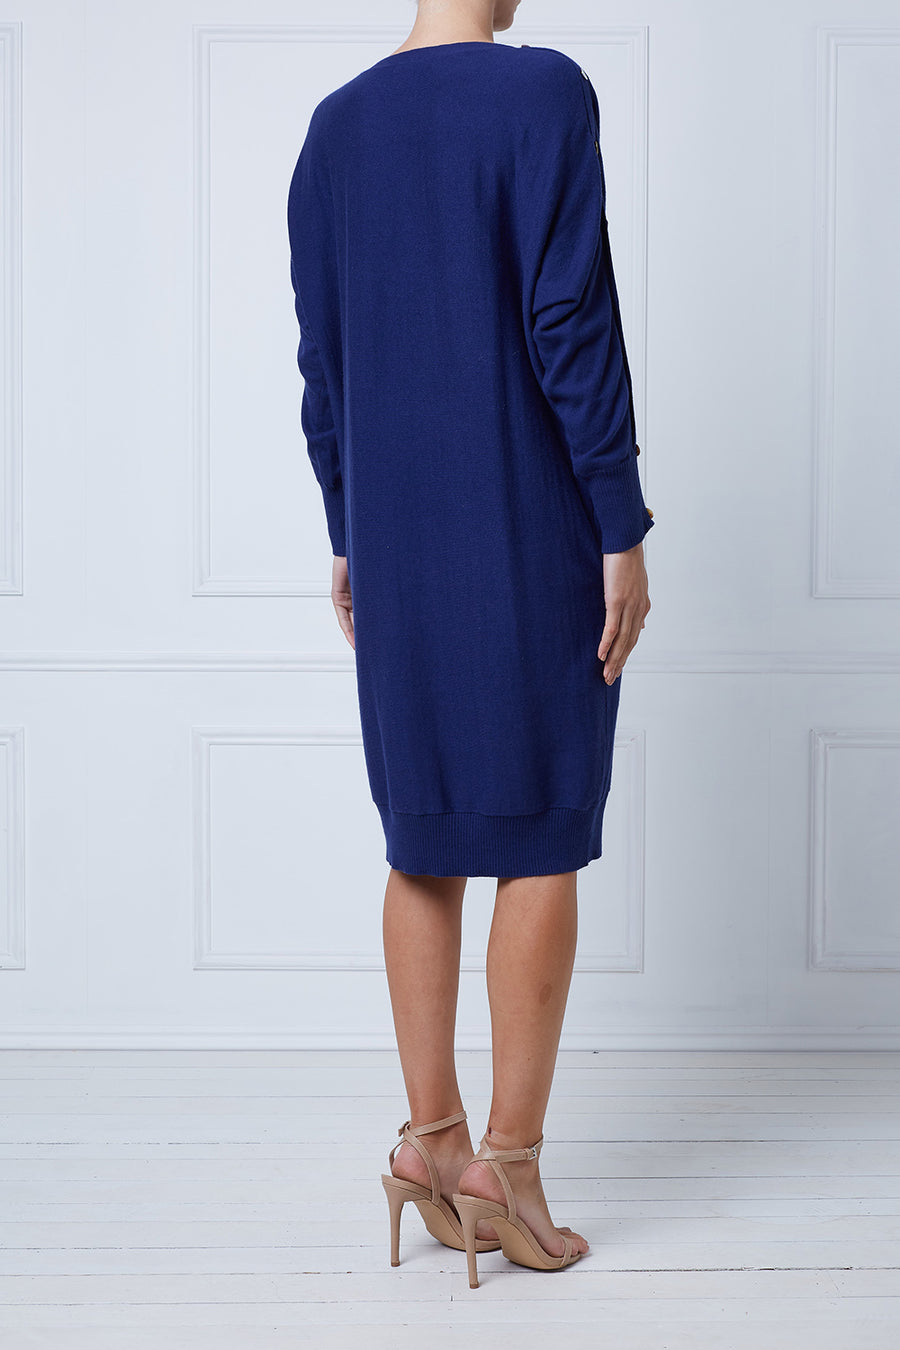 Sheba Knit Dress